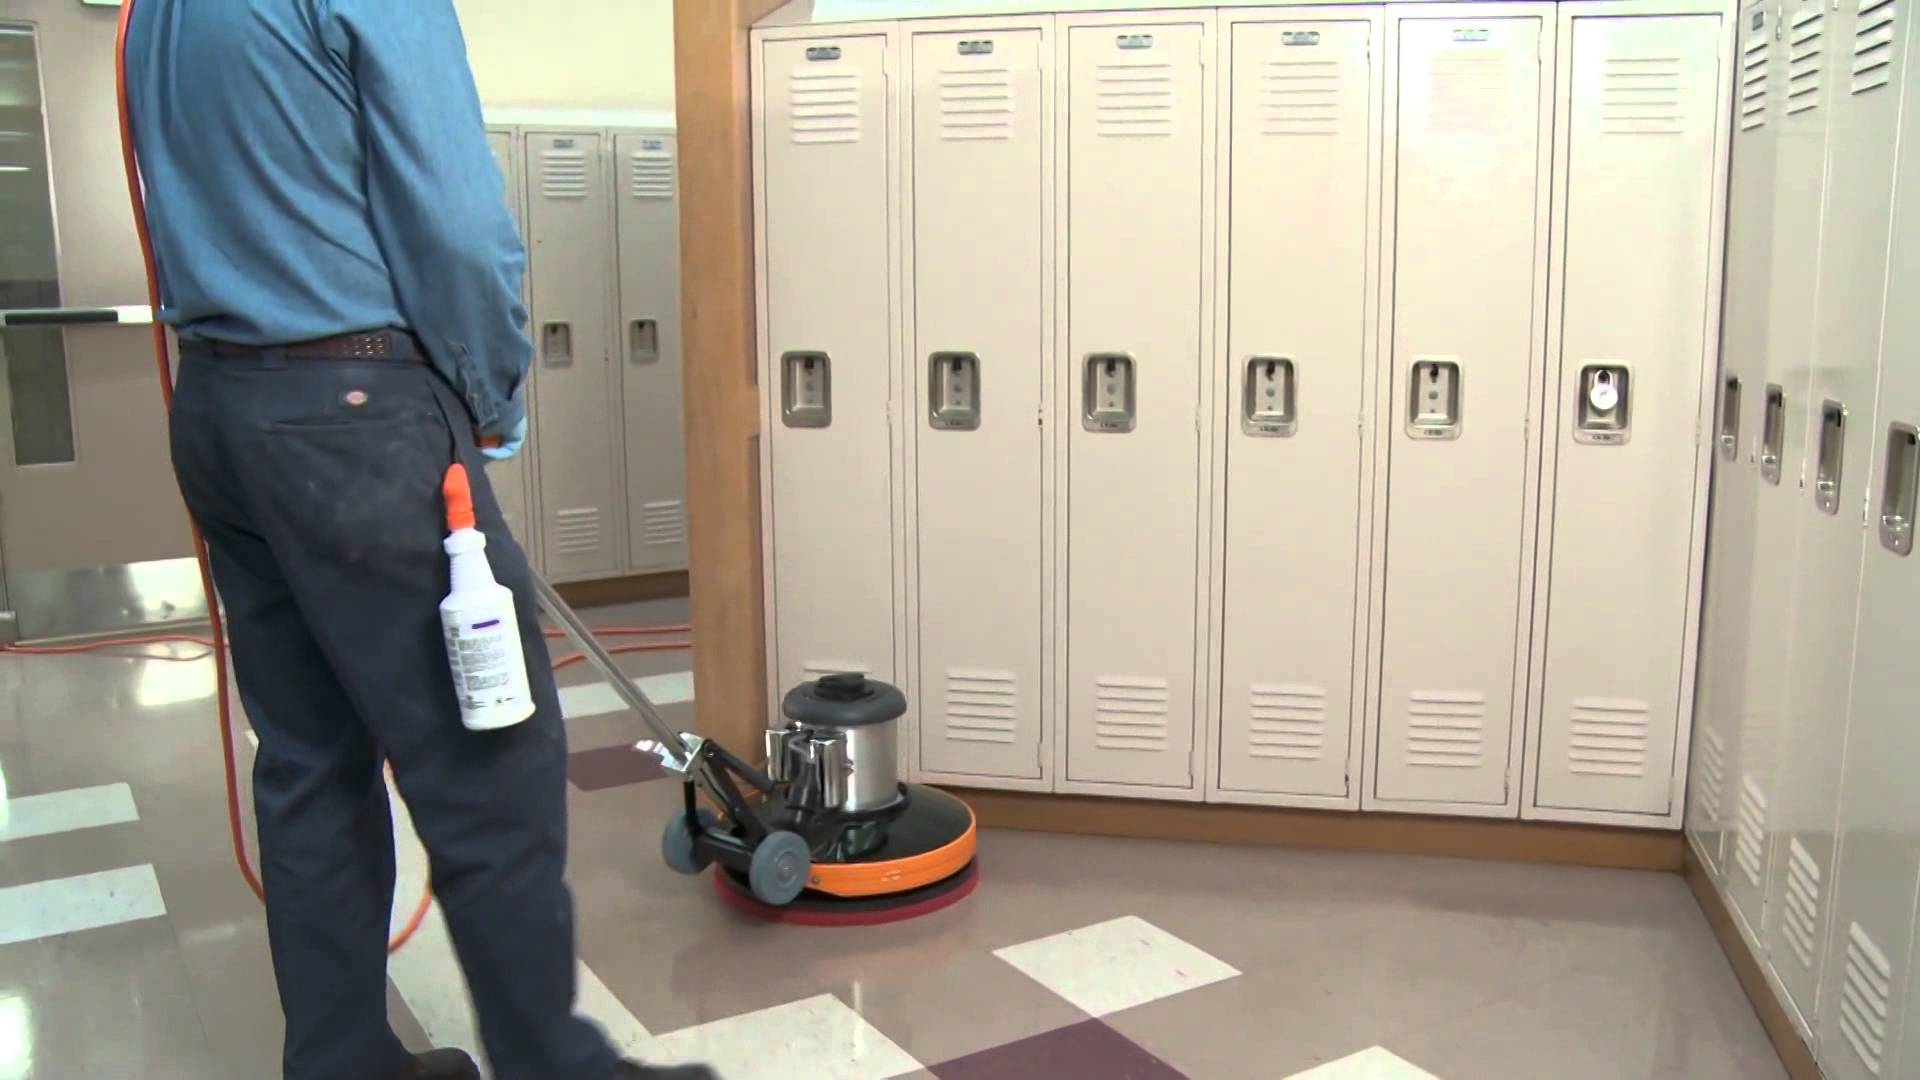 JaniService Janitorial Service Professionals - Buffing ceramic tile floors